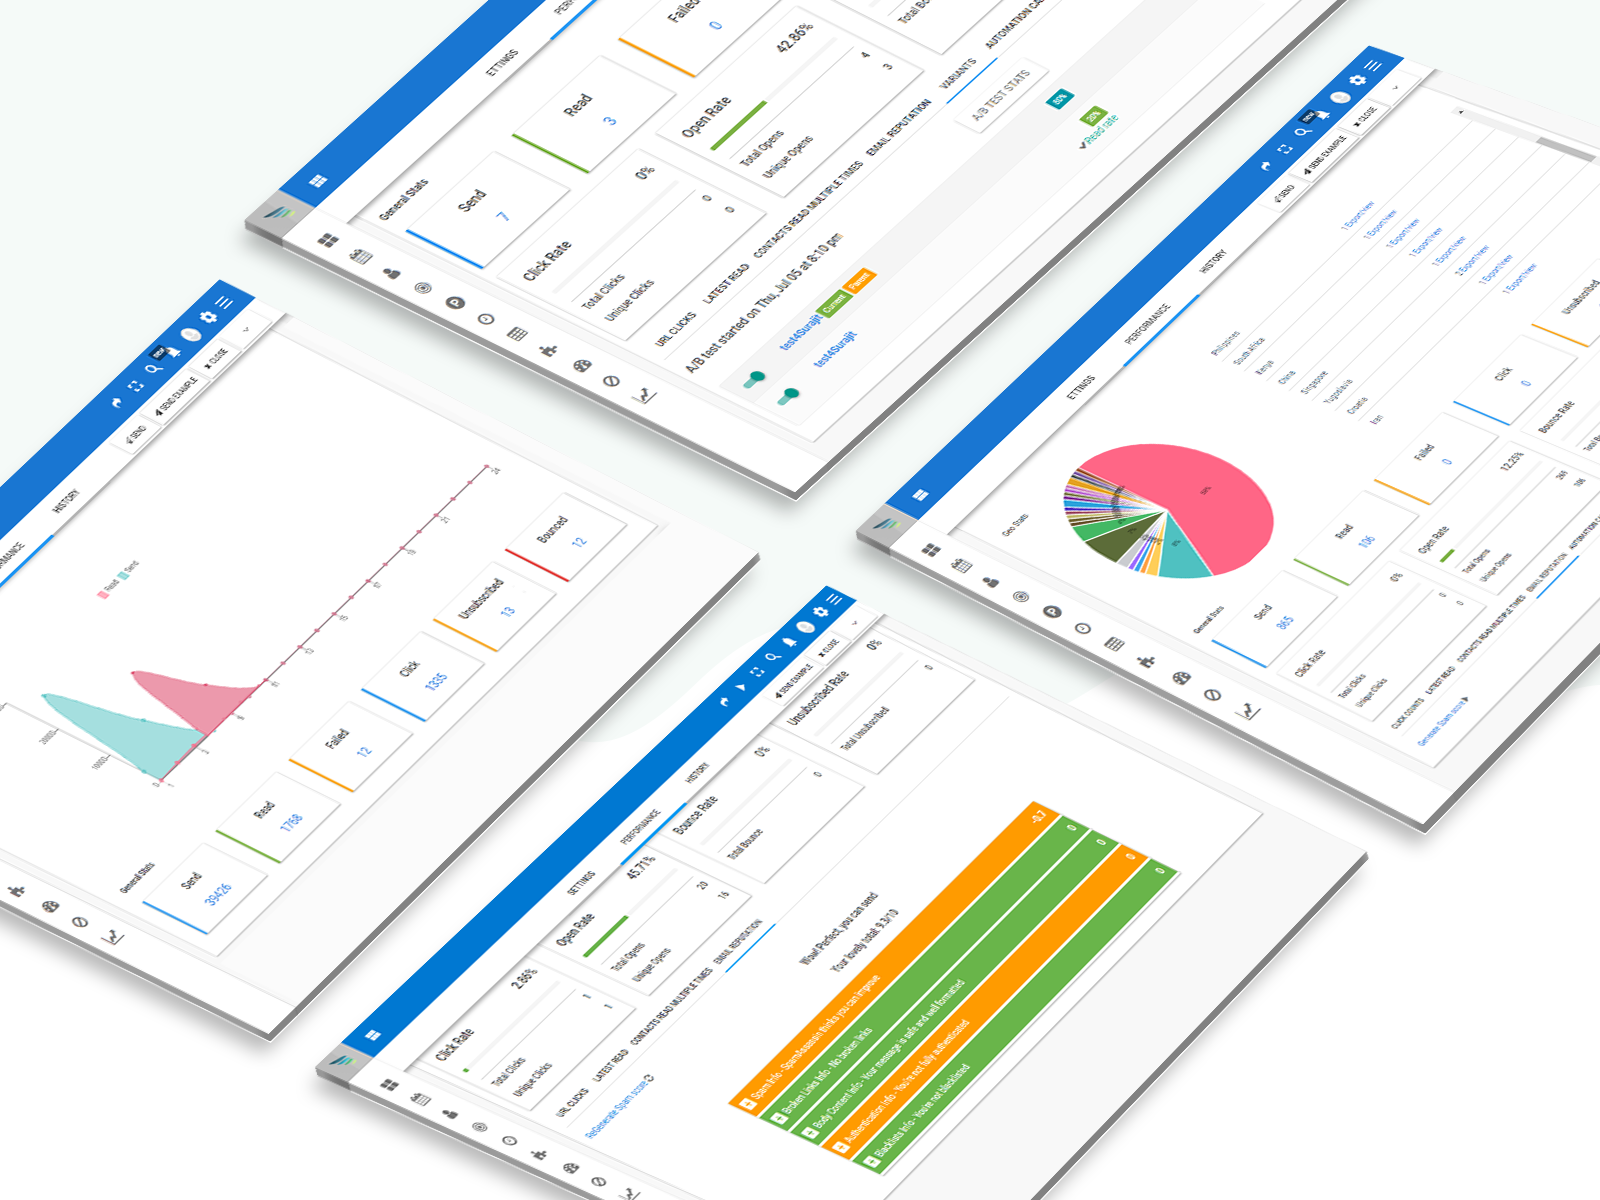 play well using features like monitor-full-Email-analytics-plus-updated-Reporting-always-which-will-provide-you-finer-experience that you could use to get started with optimized plan, reduce spam complaints, and grow following